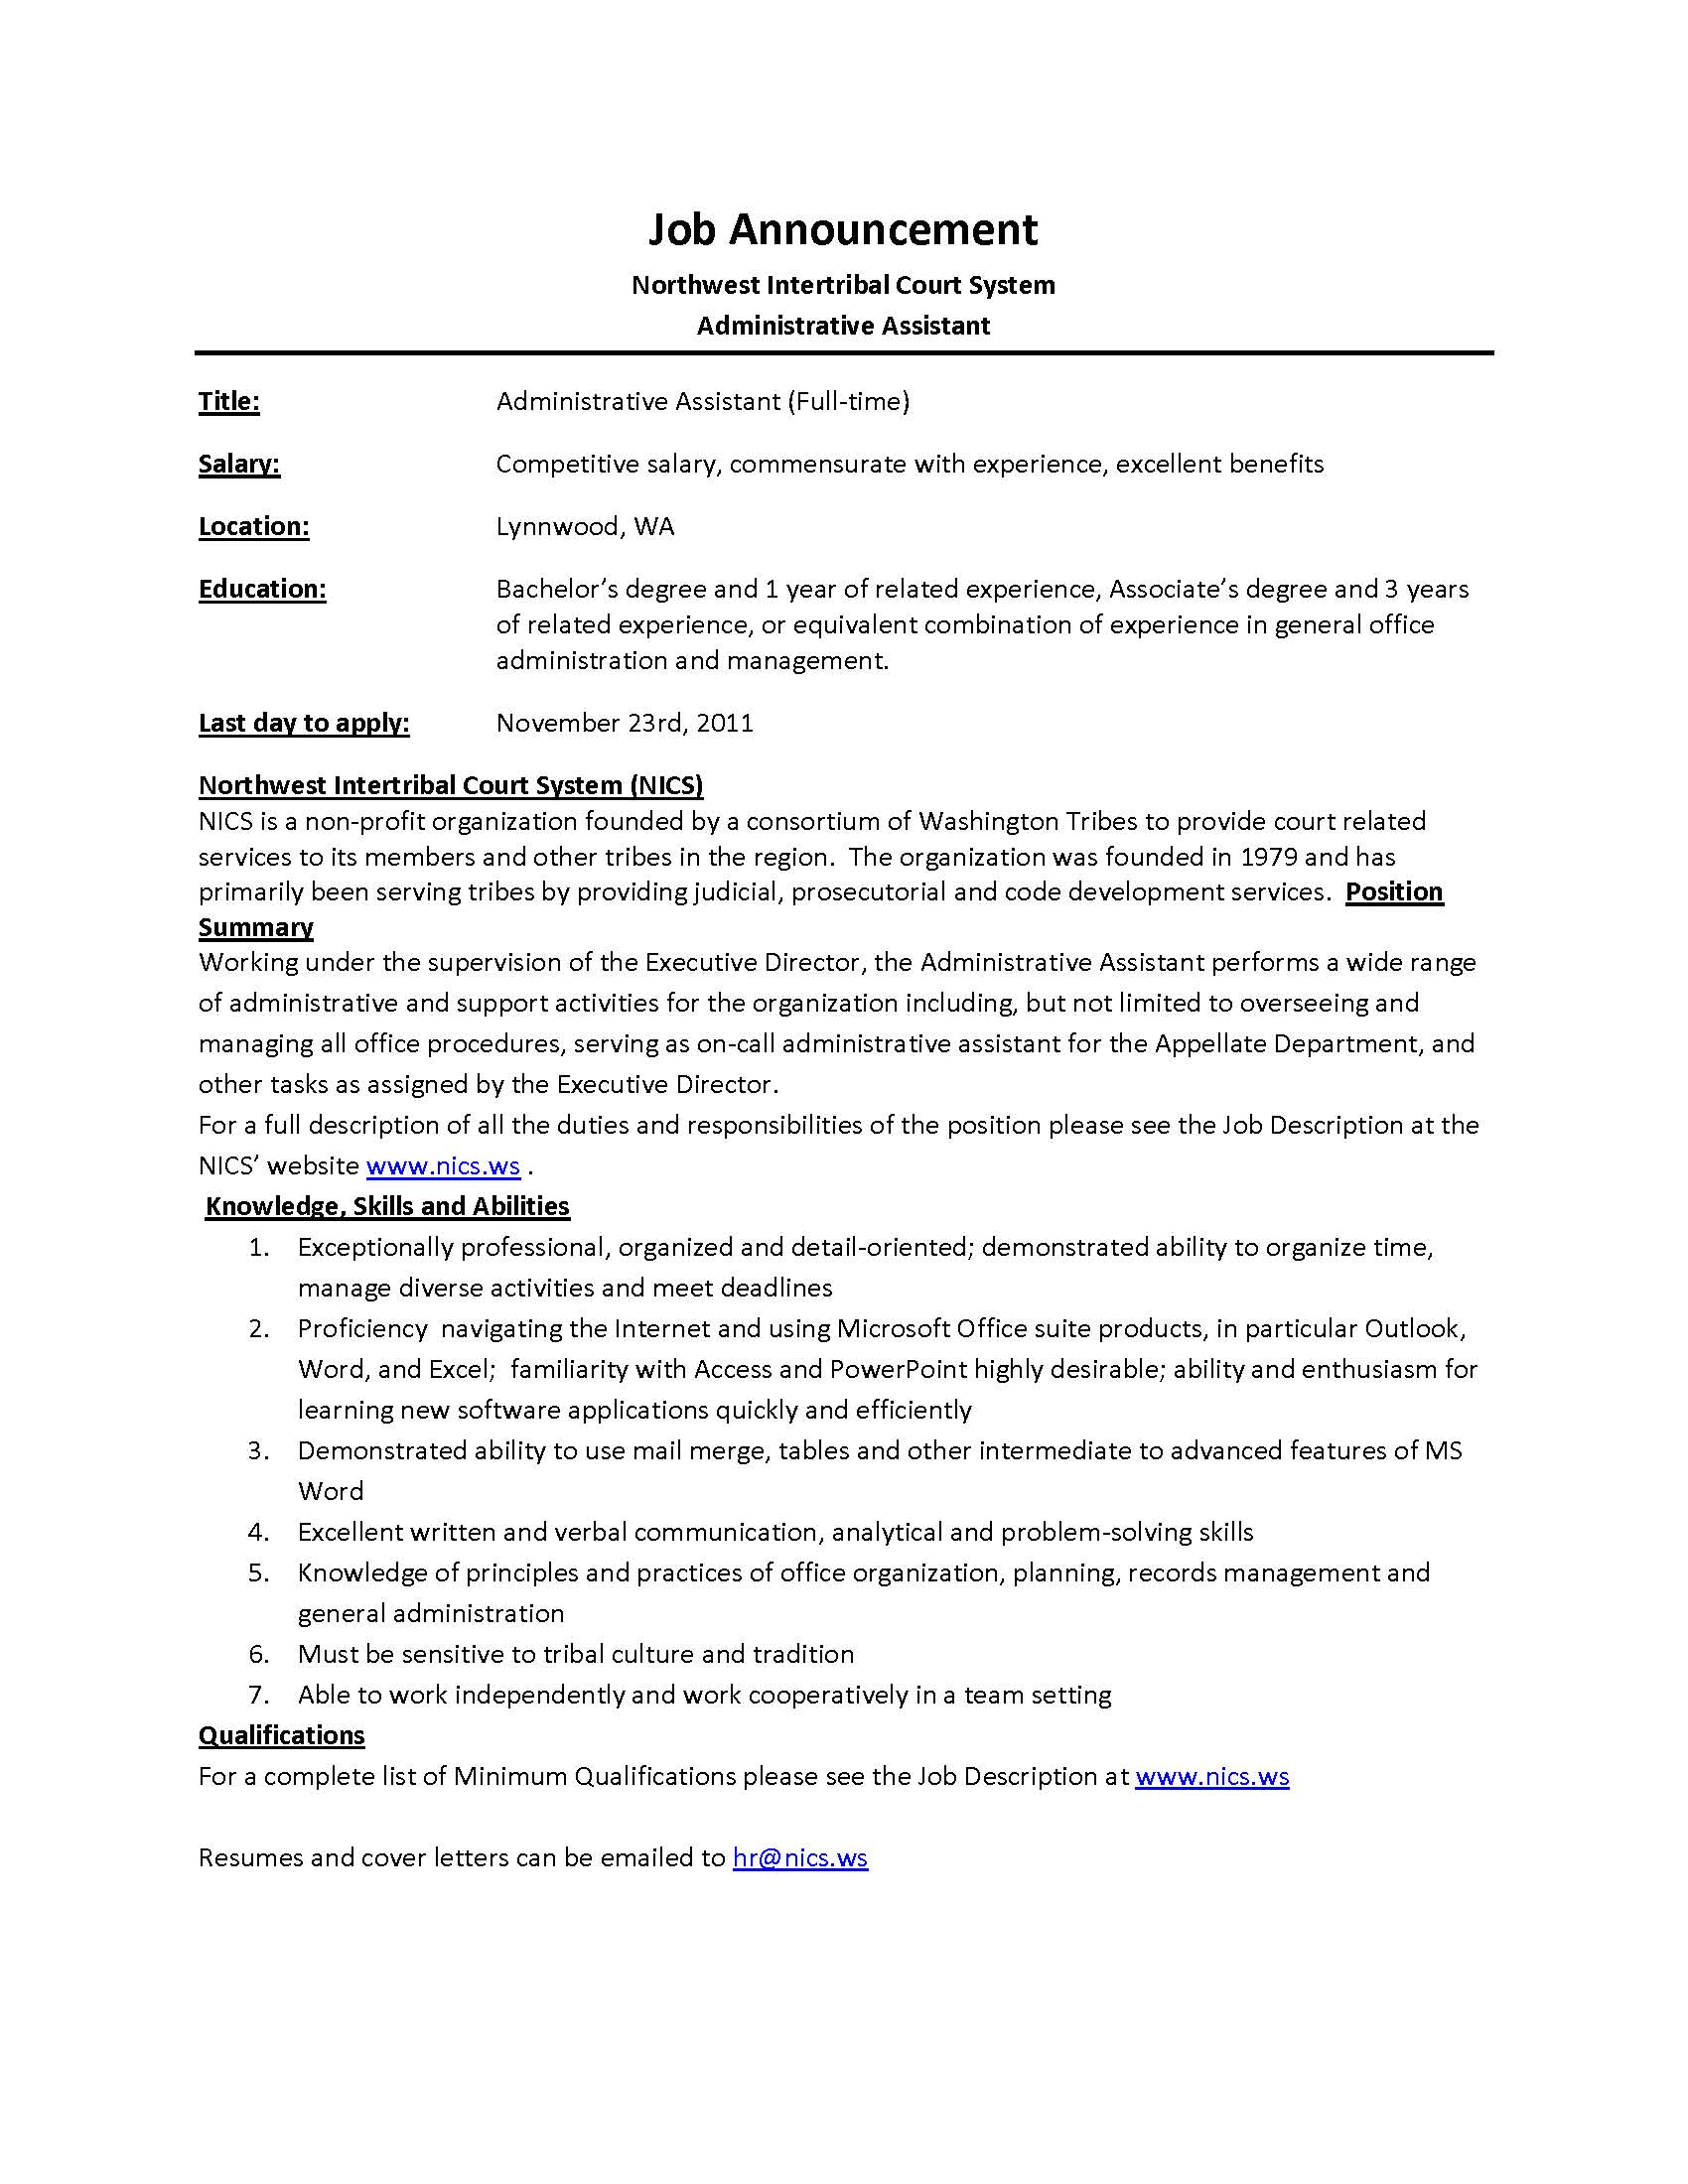 Administrative assistant job description office sample for Creating a job description template